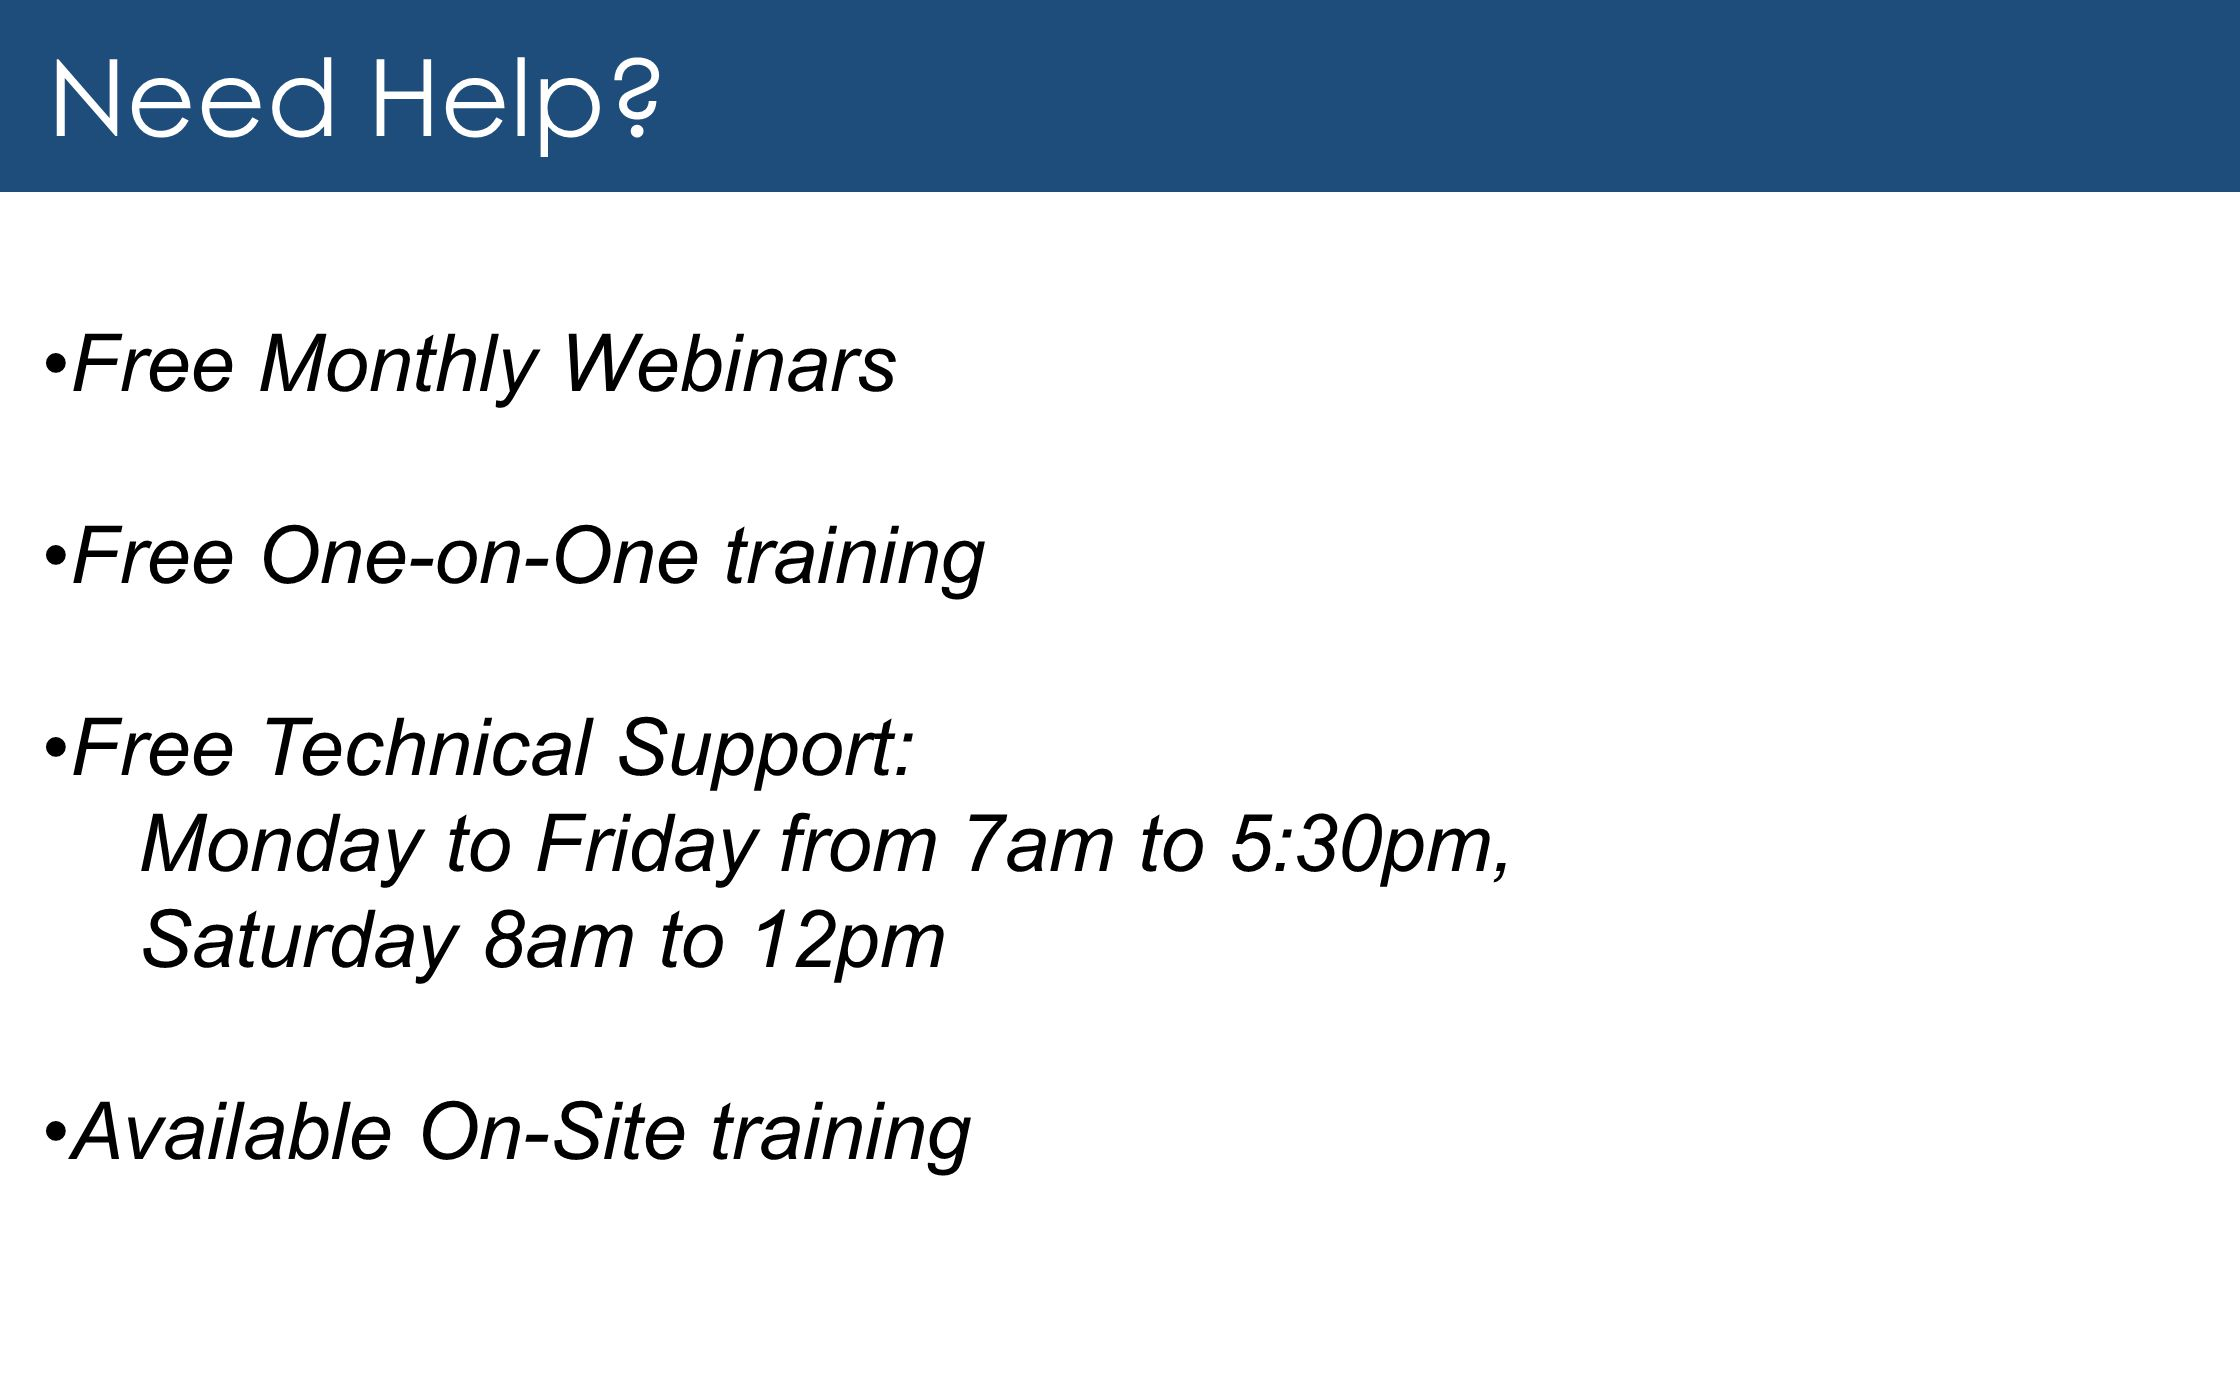 Need Help Free Monthly Webinars Free One-on-One training